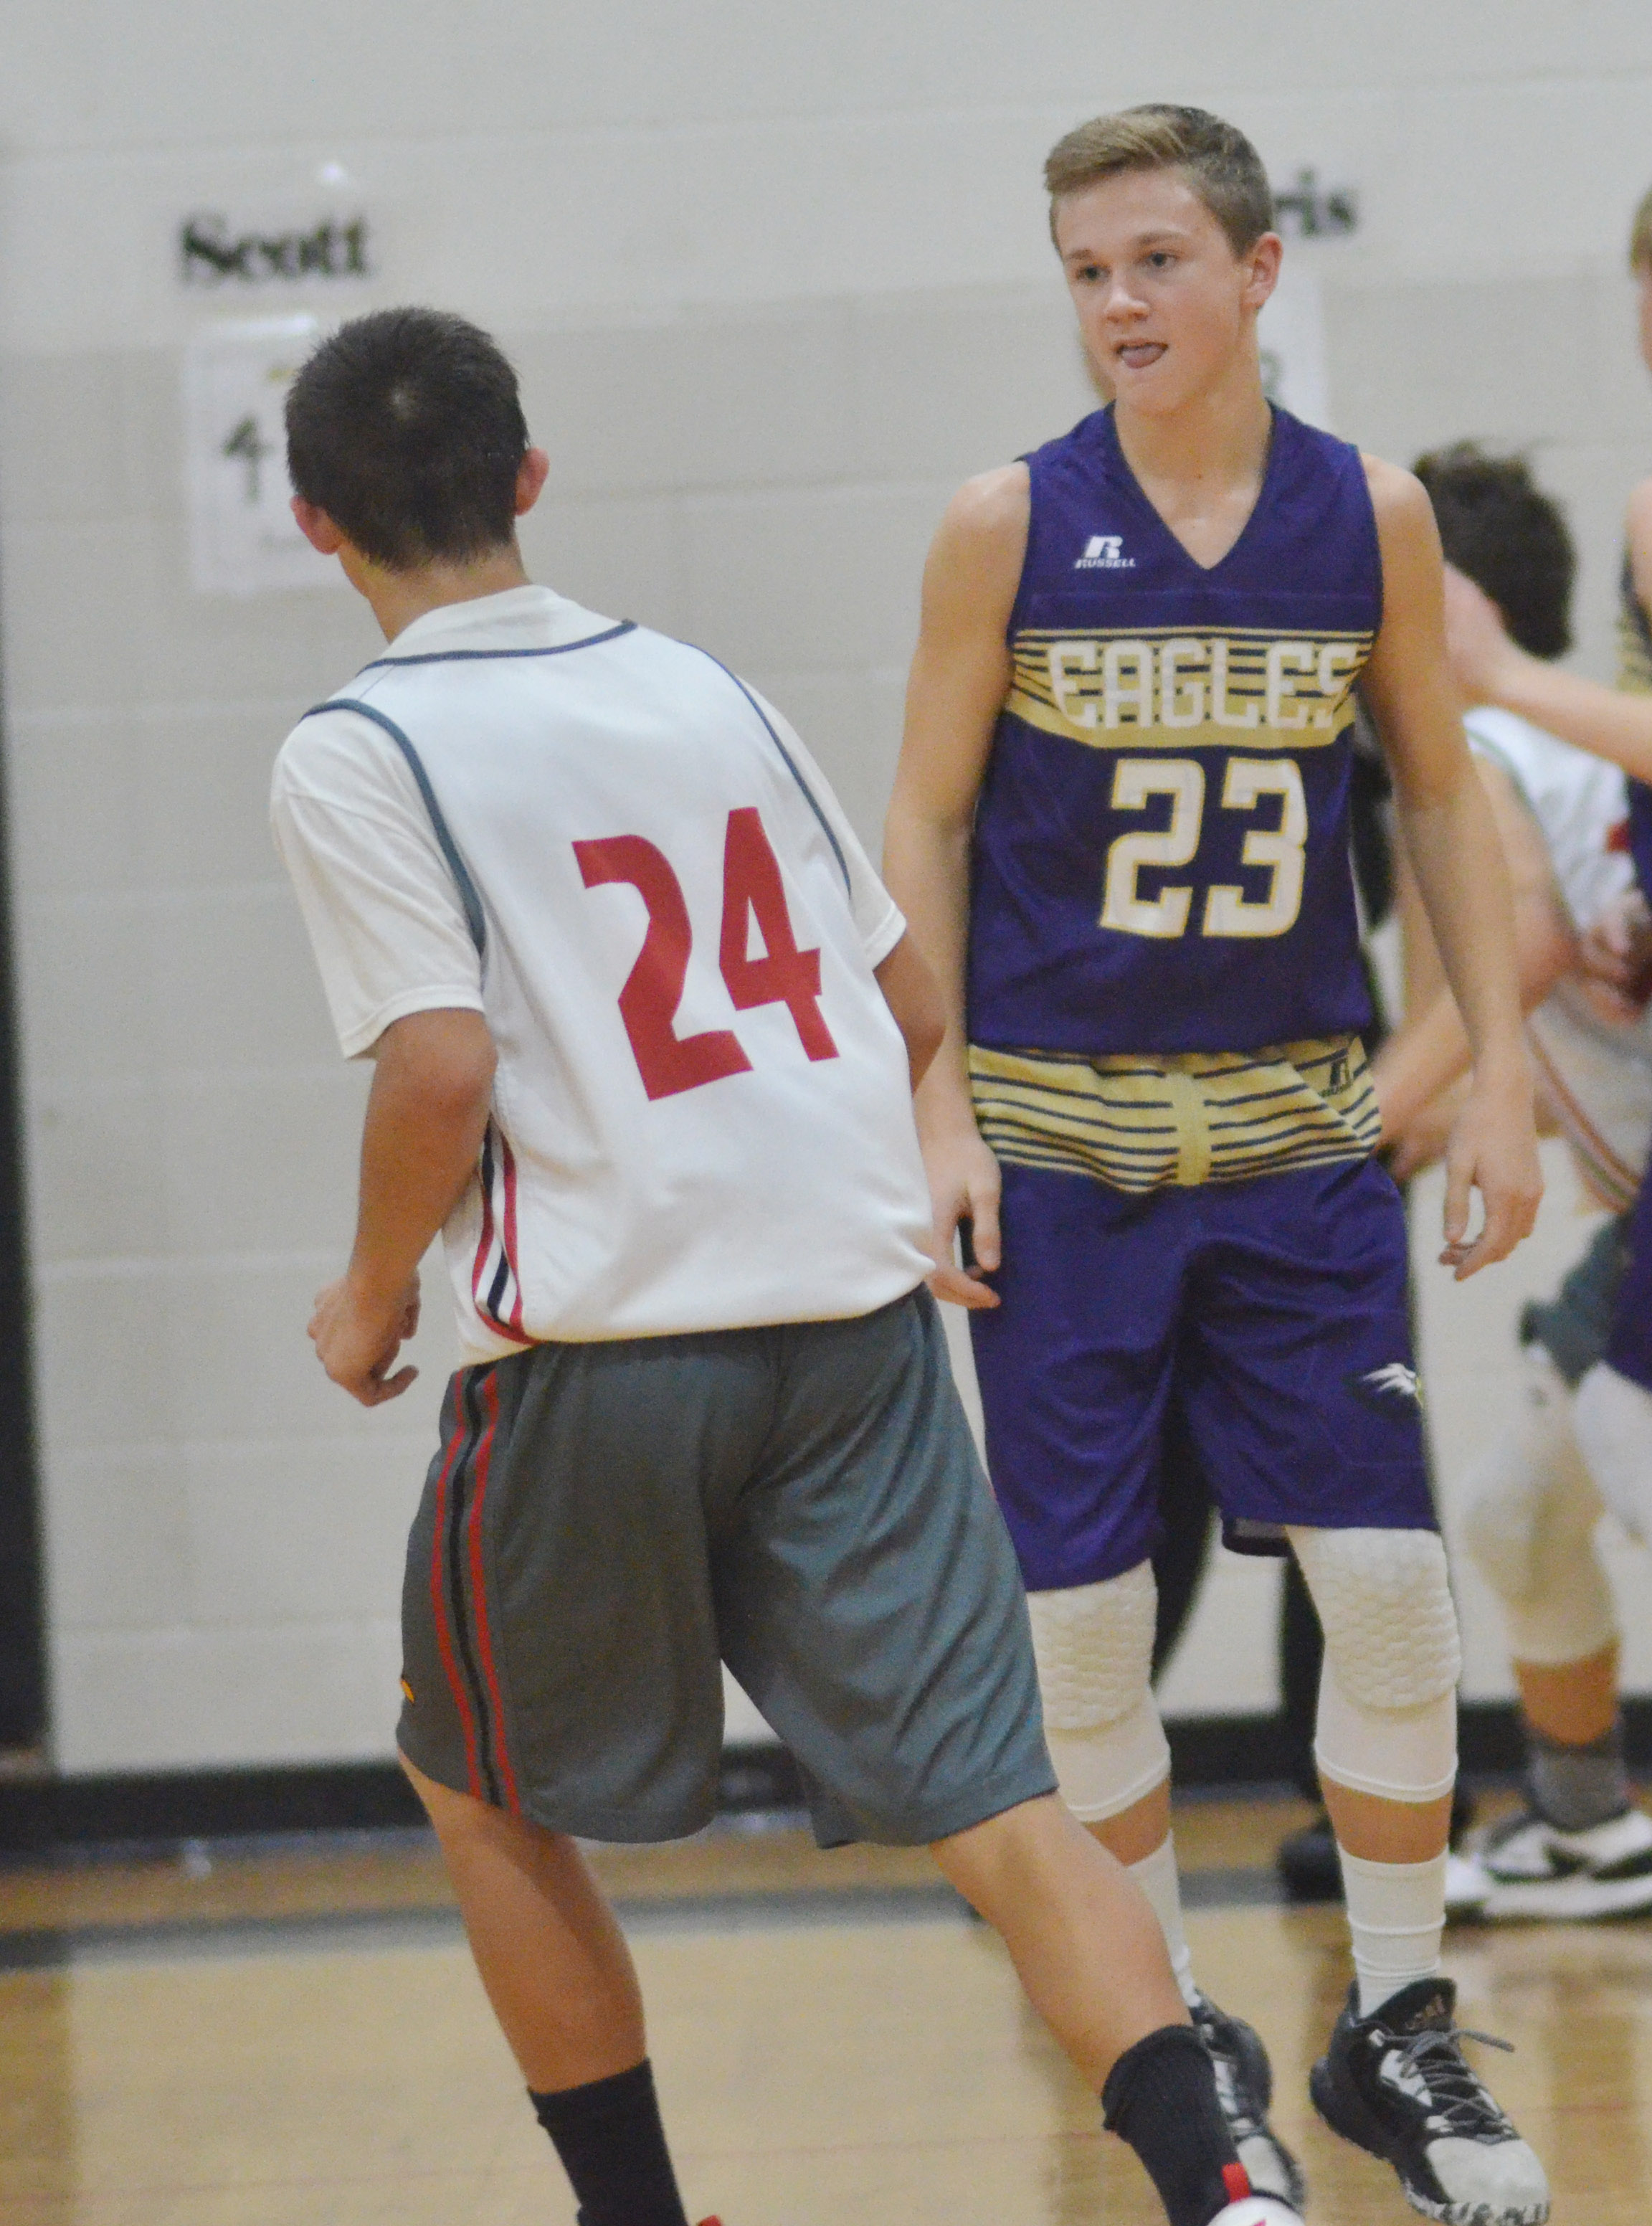 CMS eighth-grader Blase Wheatley plays defense.